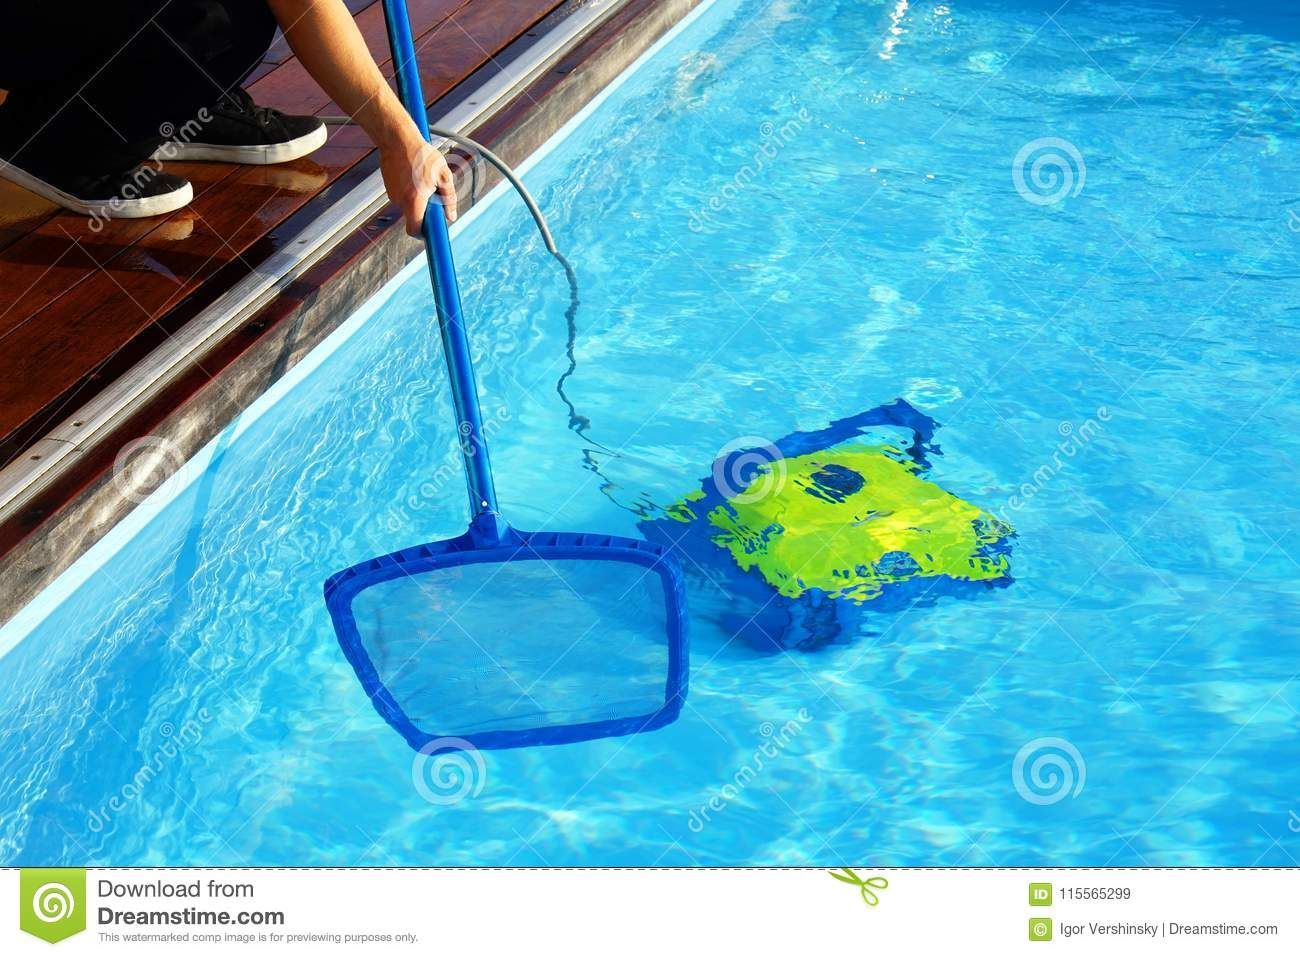 The 10 Best Automatic Pool Cleaners Buying Guide Automatic Pool Cleaner Best Automatic Pool Cleaner Pool Cleaning